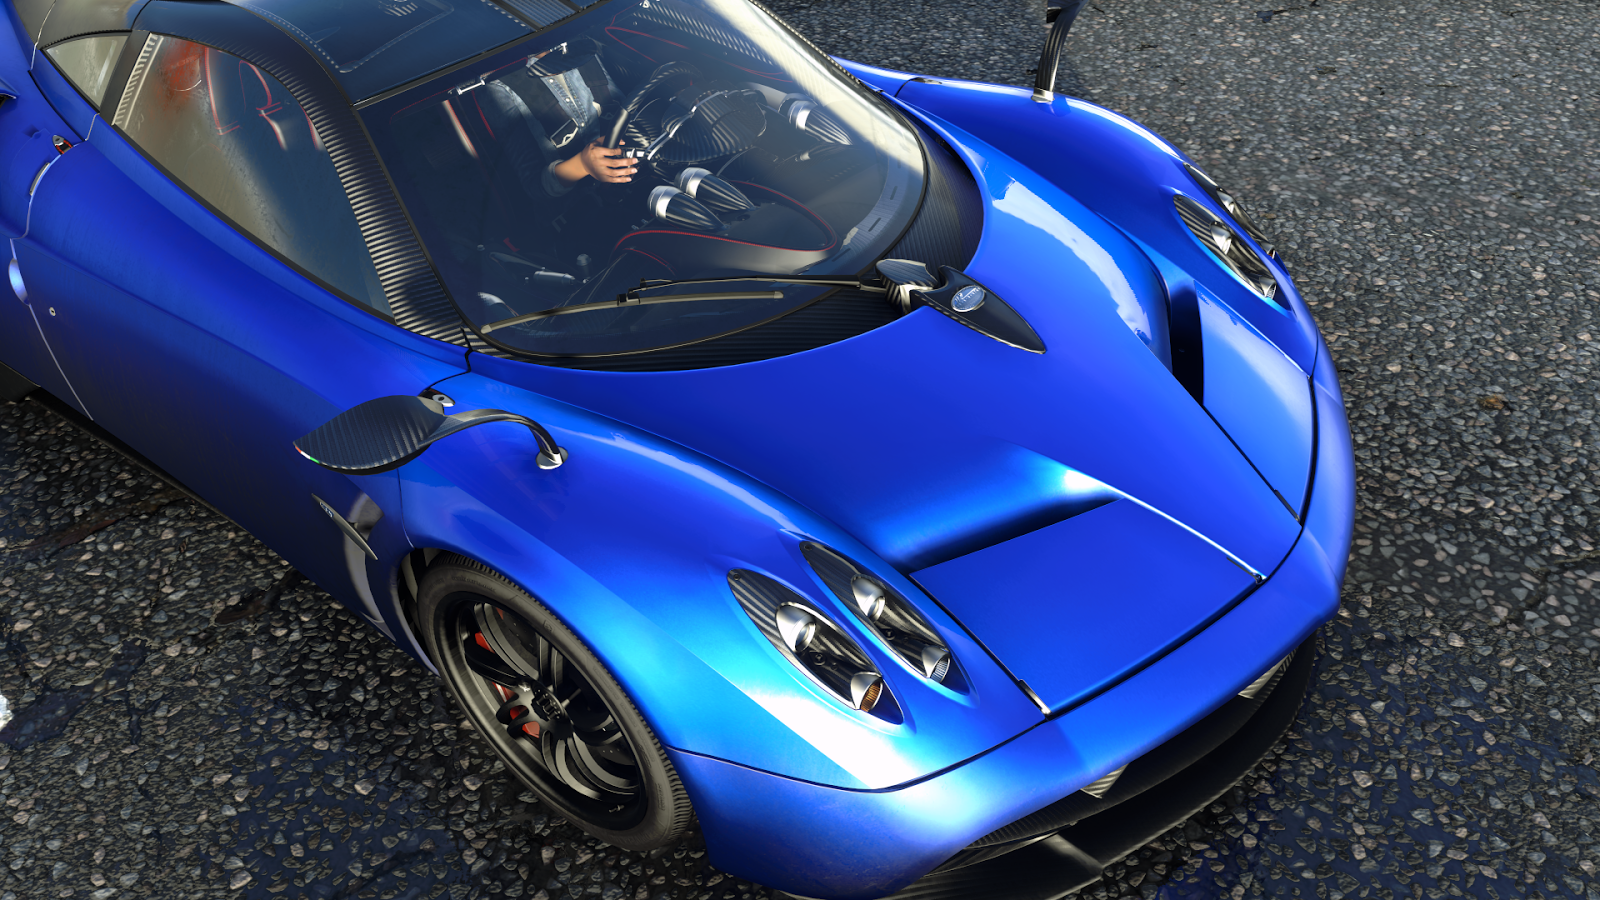 DRIVECLUB-Is-Looking-Amazing-With-Each-New-Update-PS4-Games